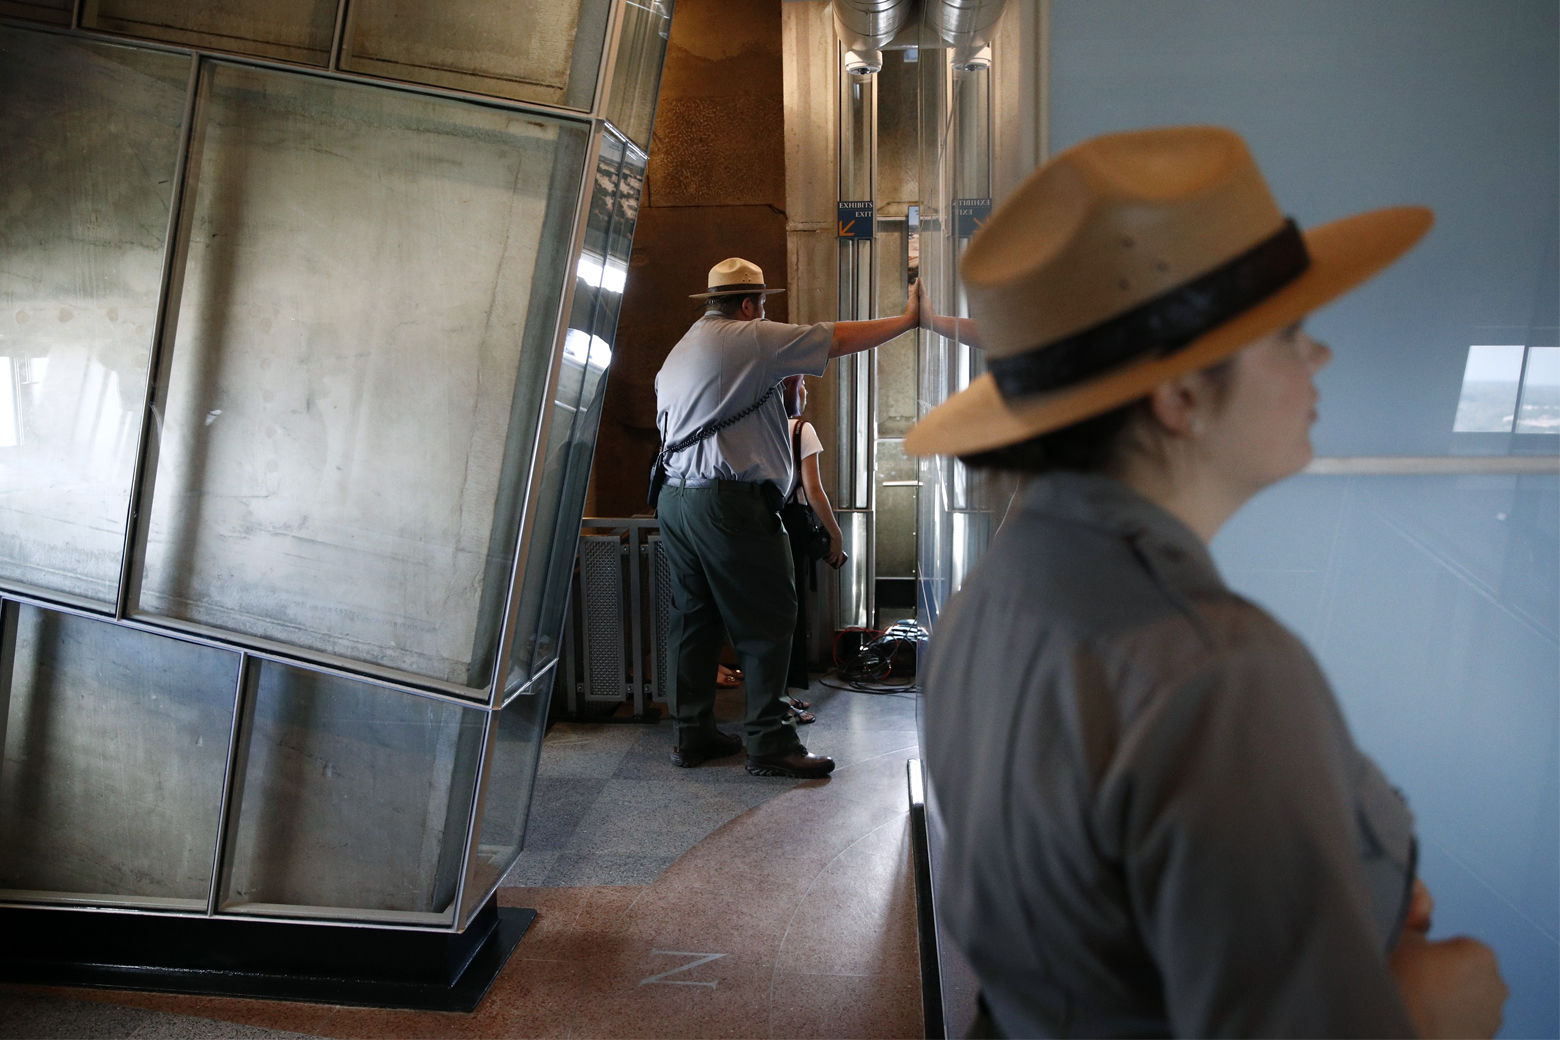 National Parks Service park rangers gather near glass panels that provide a view of interior sections of the Washington Monument's observation level during a press preview tour ahead of the monument's official reopening, Wednesday, Sept. 18, 2019, in Washington. The monument, which has been closed to the public since August 2016, is scheduled to re-open Thursday, Sept. 19. (AP Photo/Patrick Semansky)